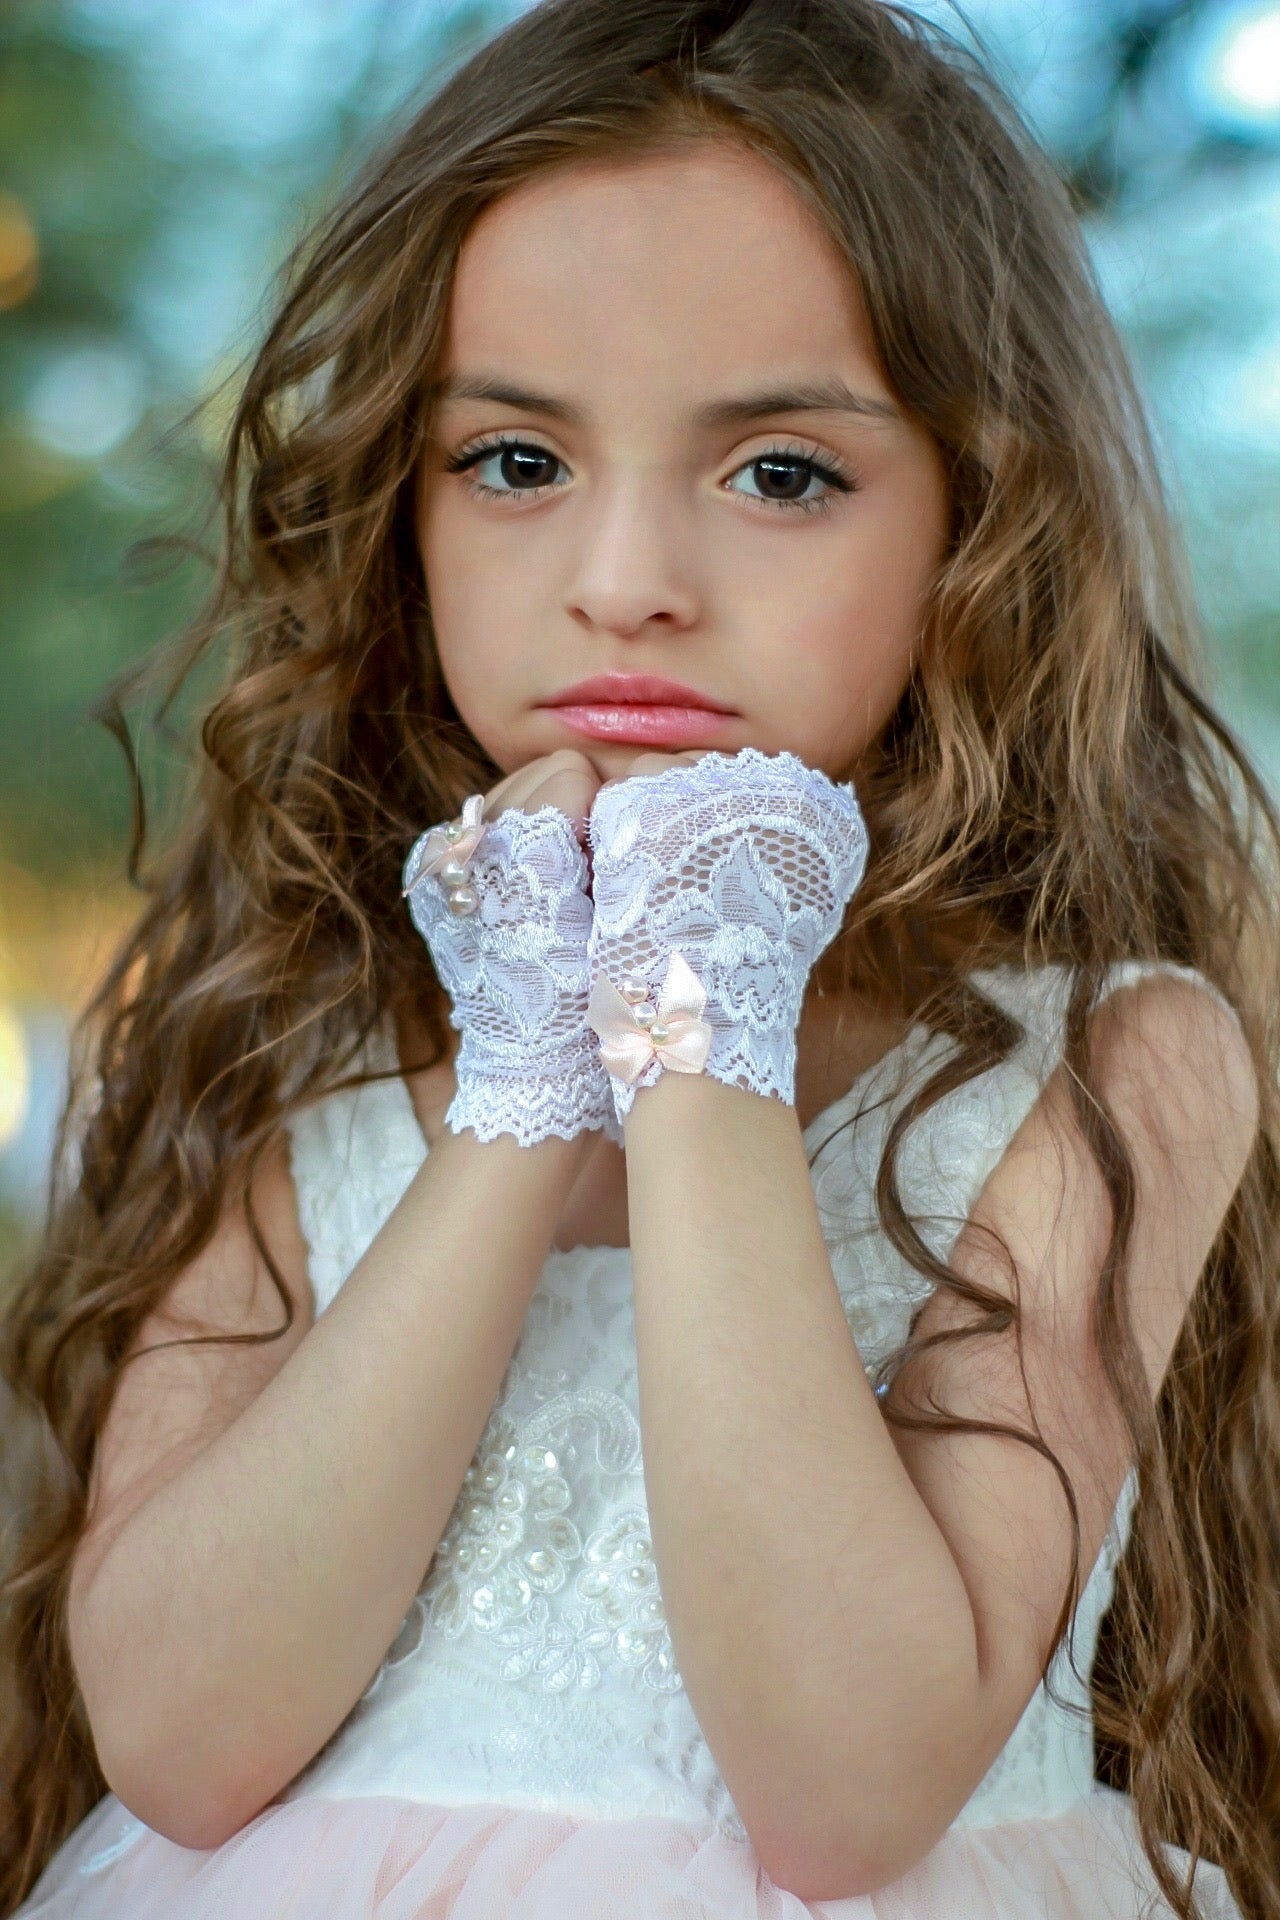 Lace and Pearls Girls Fingerless Gloves - Steampunk-Wolf-Kidz